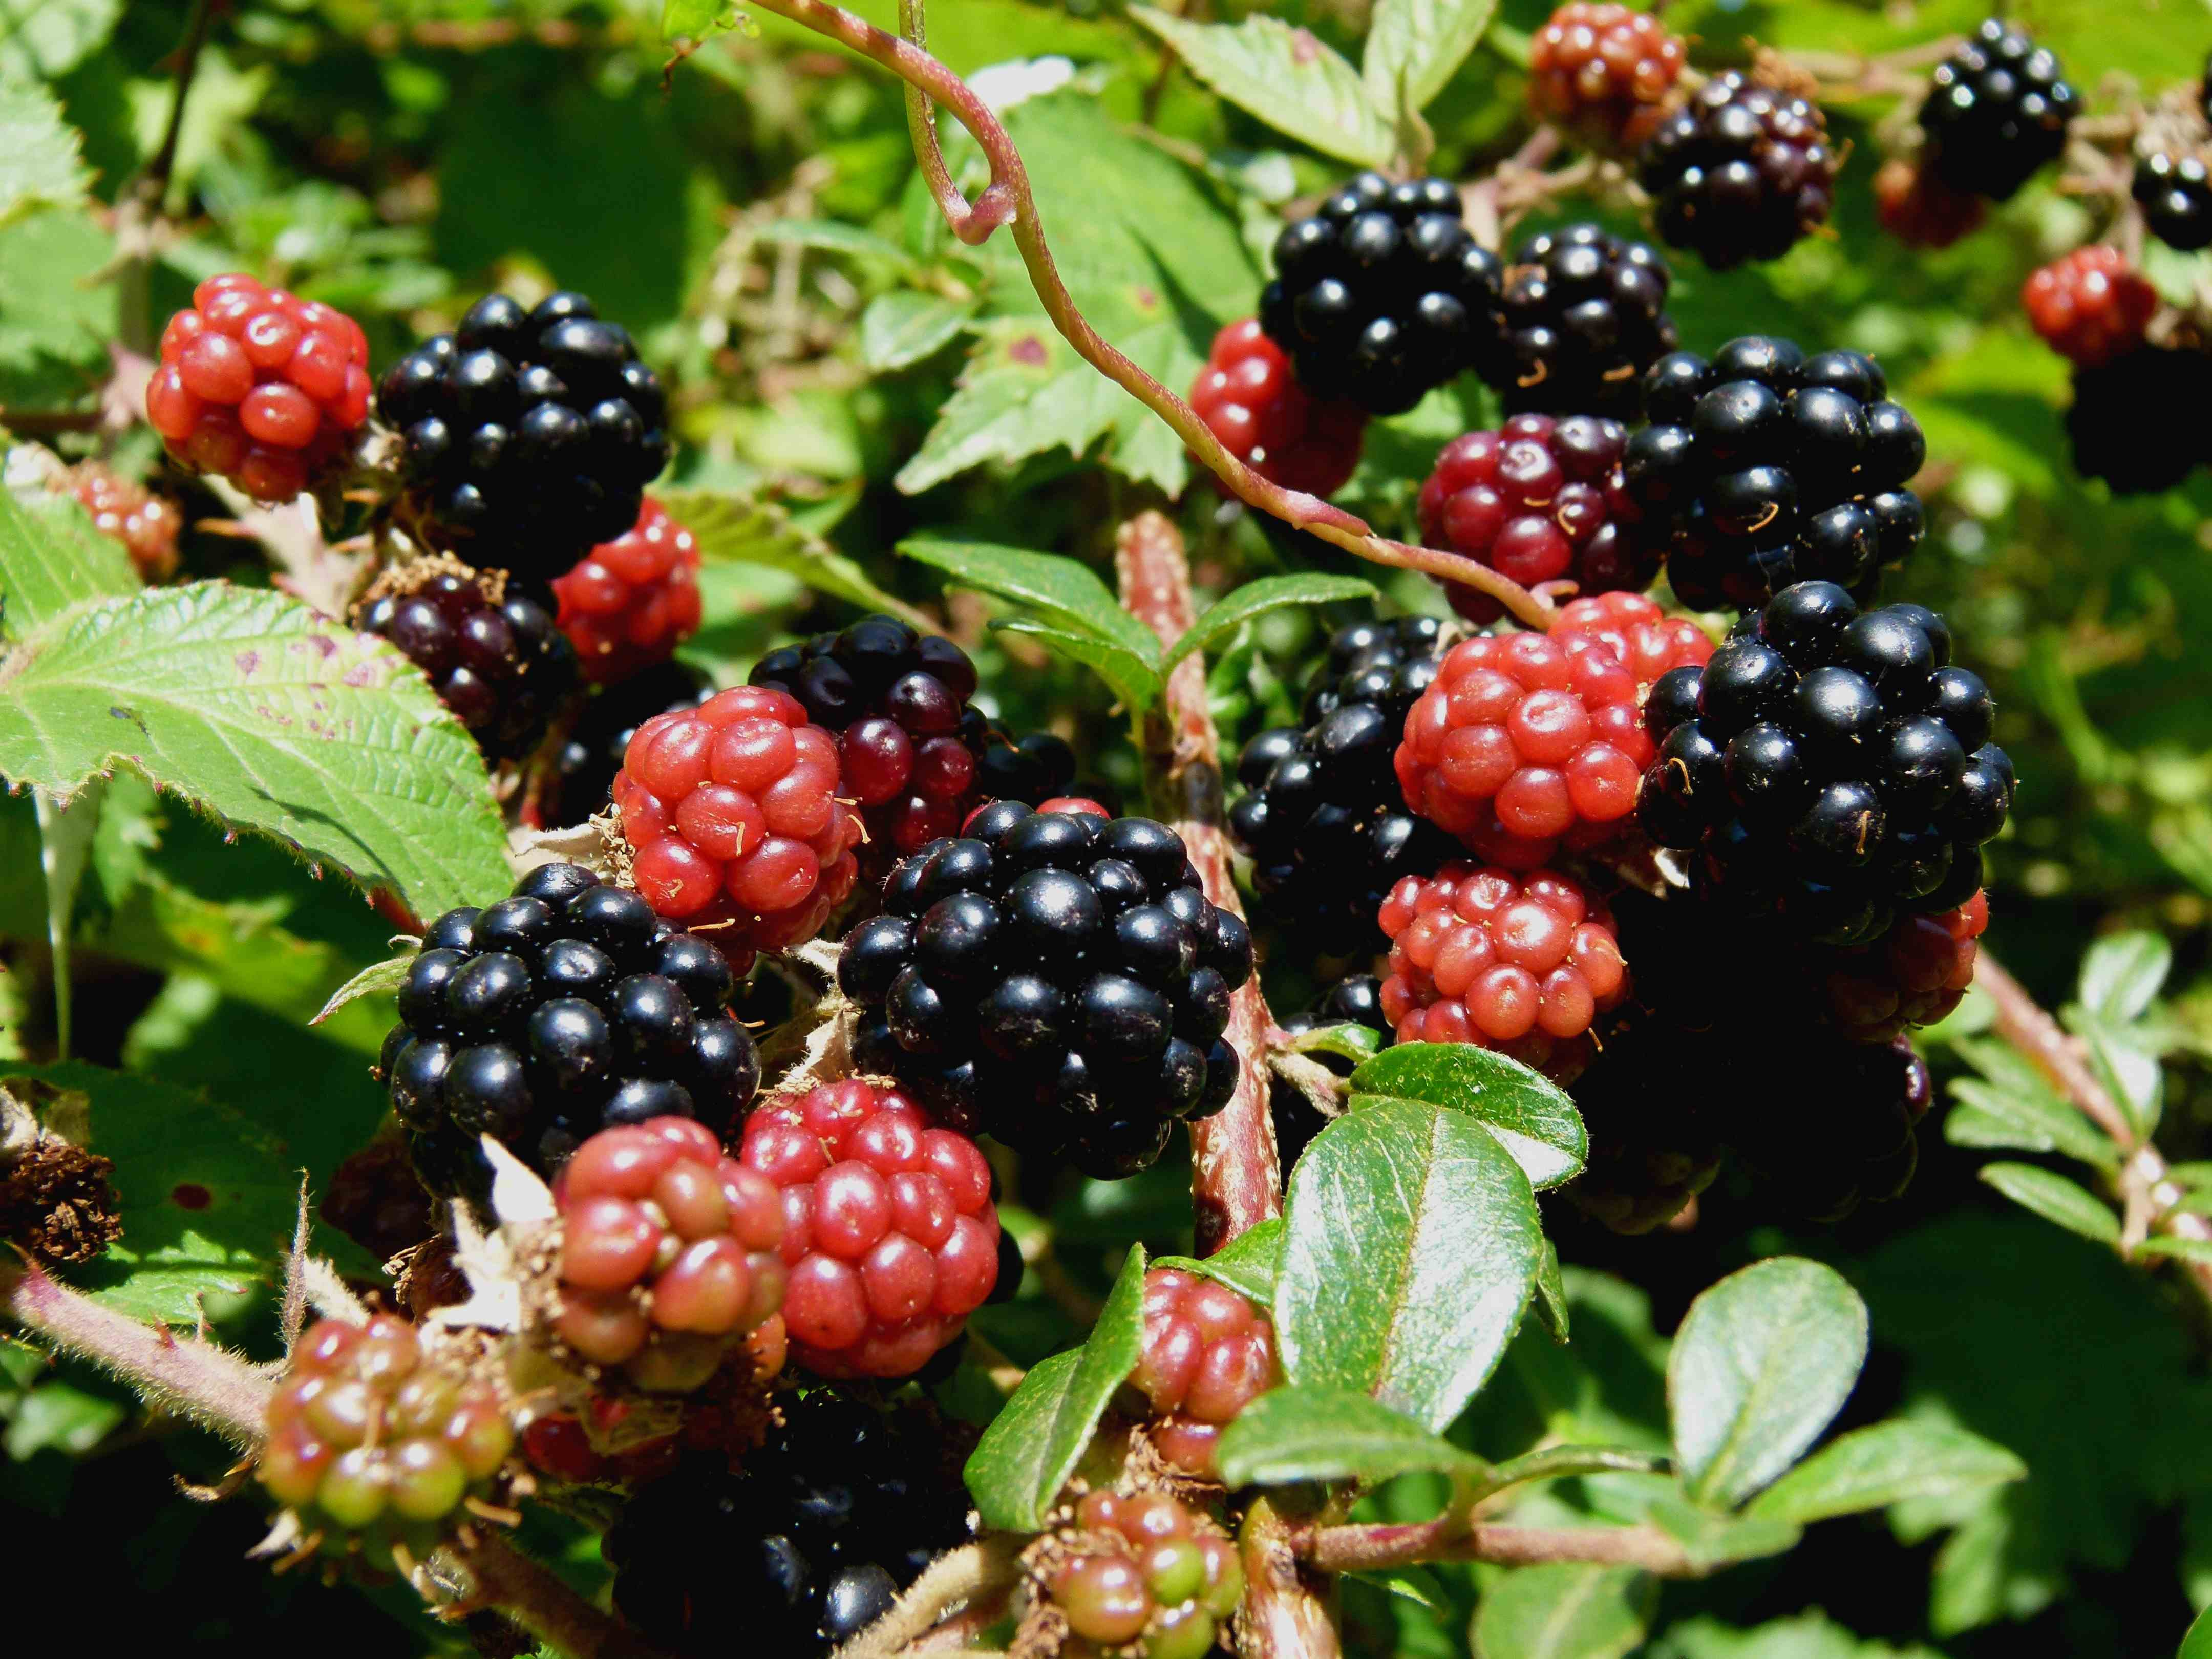 black berries What you eat can influence your blood sugar levels high blood sugar can lead to type 2 diabetes blackberries pack a nutritional punch because they contain a number of polyphenols, plant substances that have health benefits, along with fiber and a low-carbohydrate count.